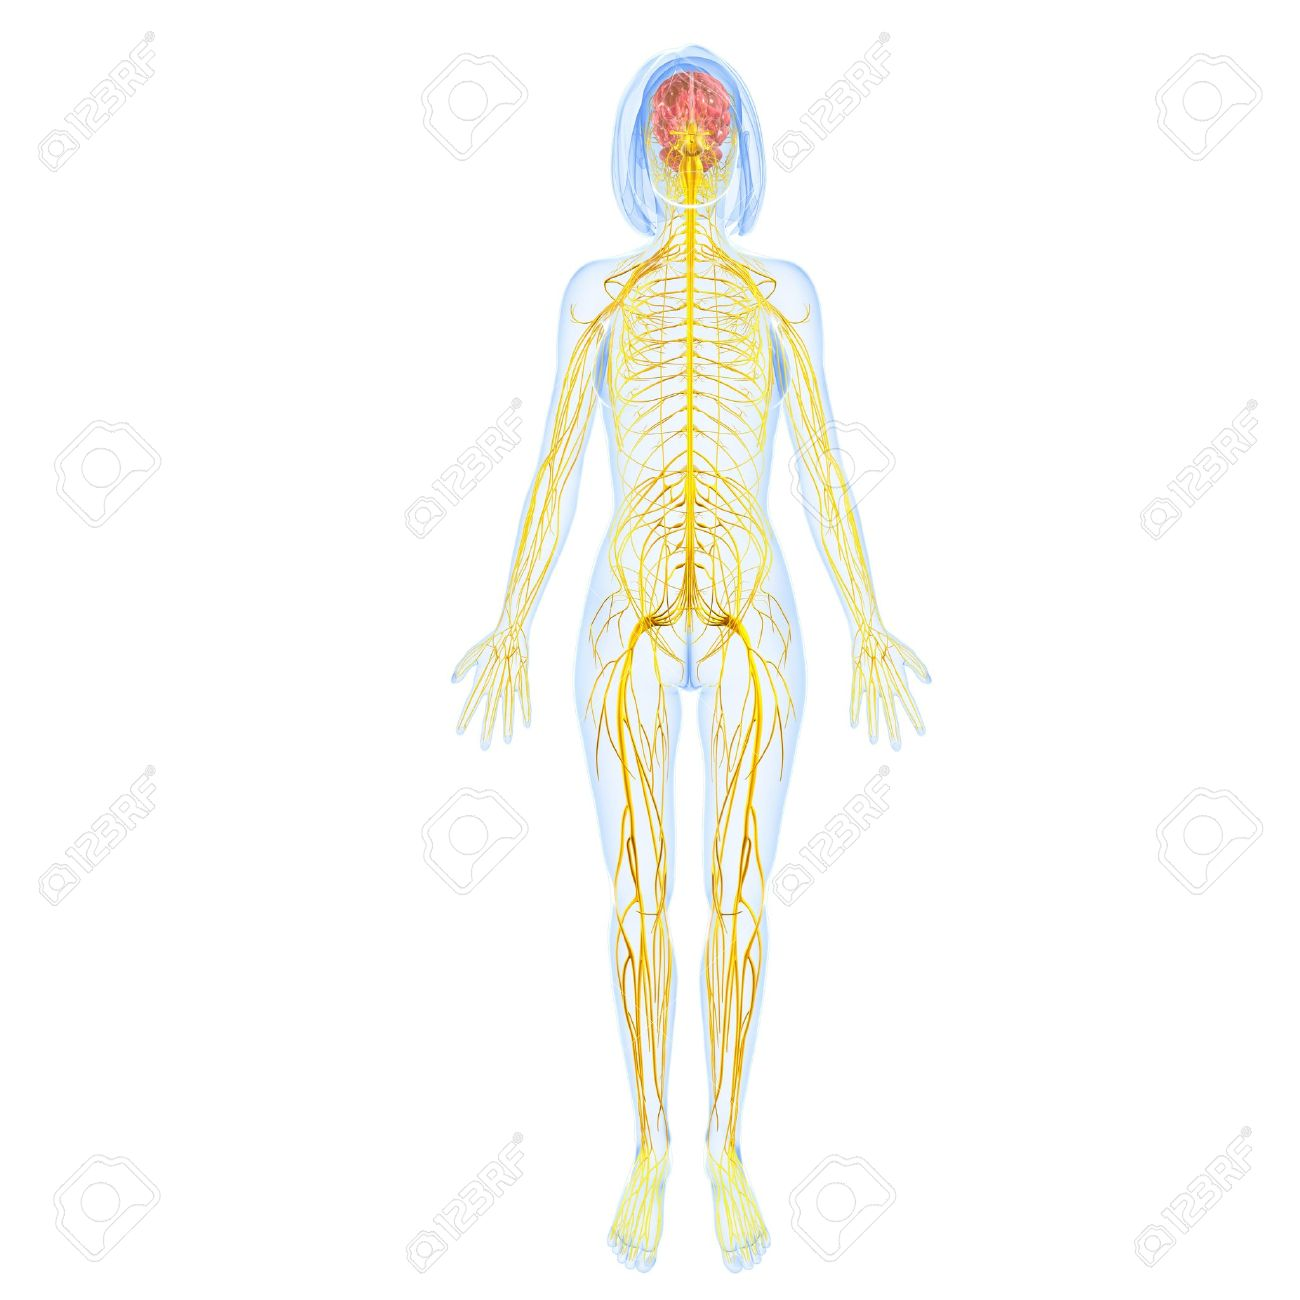 Female nervous system full body back view stock photo picture and female nervous system full body back view stock photo 15181682 ccuart Choice Image